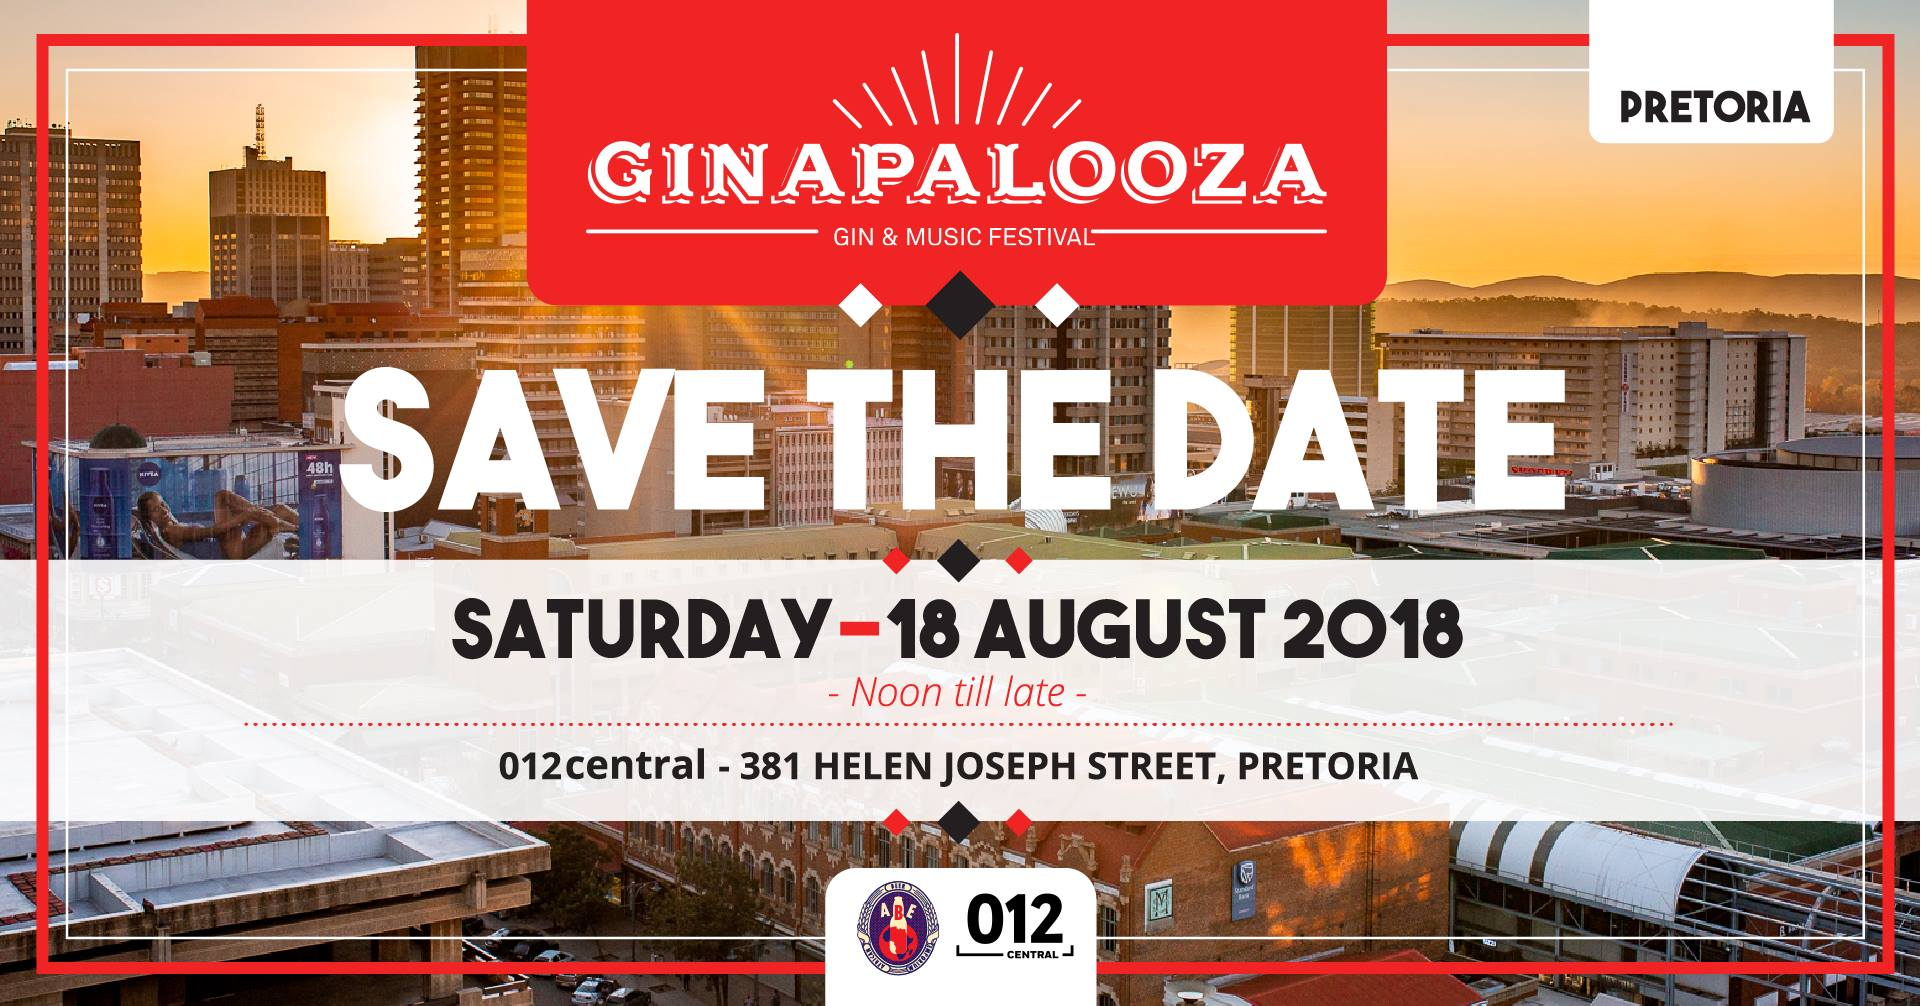 Ginapalooza - Gin & Music Festival - Pretoria Edition — 18 August 2018